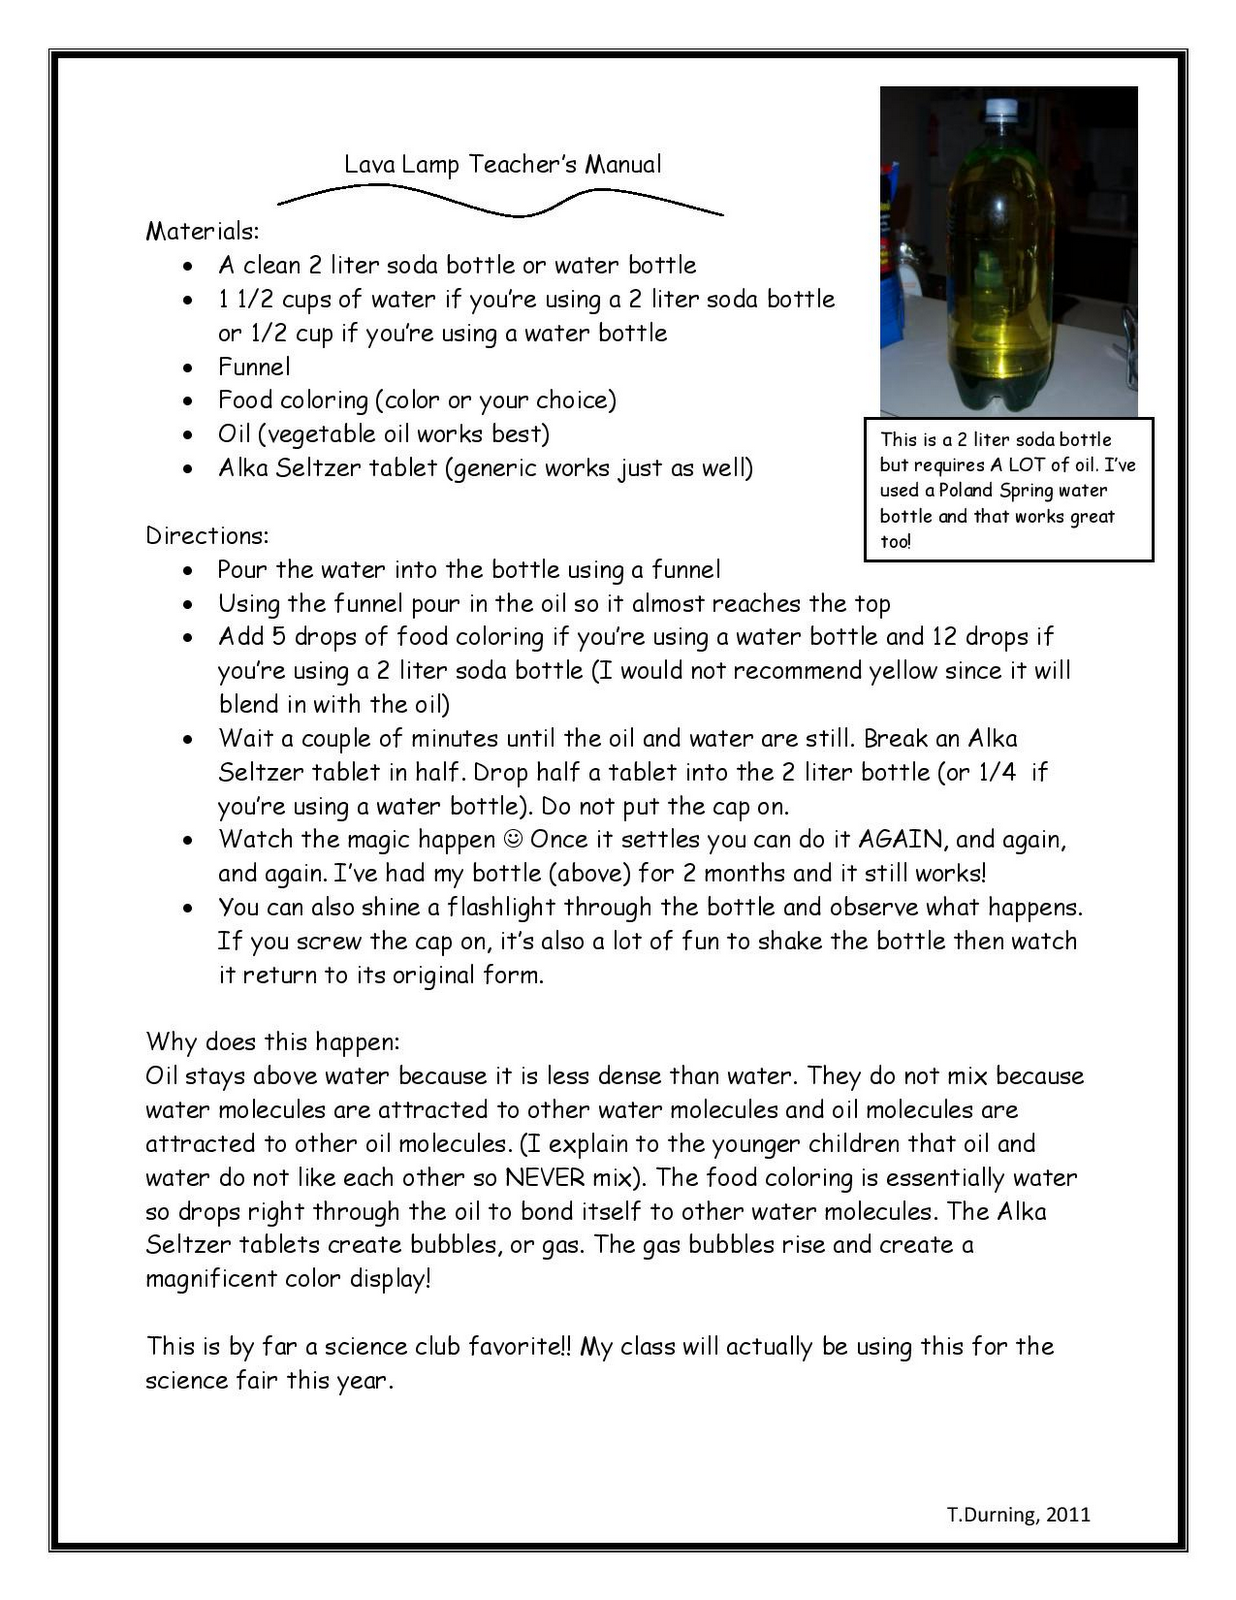 Lava Lamp Science Fair Project Entrancing 36 Free Resources Lava Lamp Science Experiment  Teaching Ideas In Design Inspiration